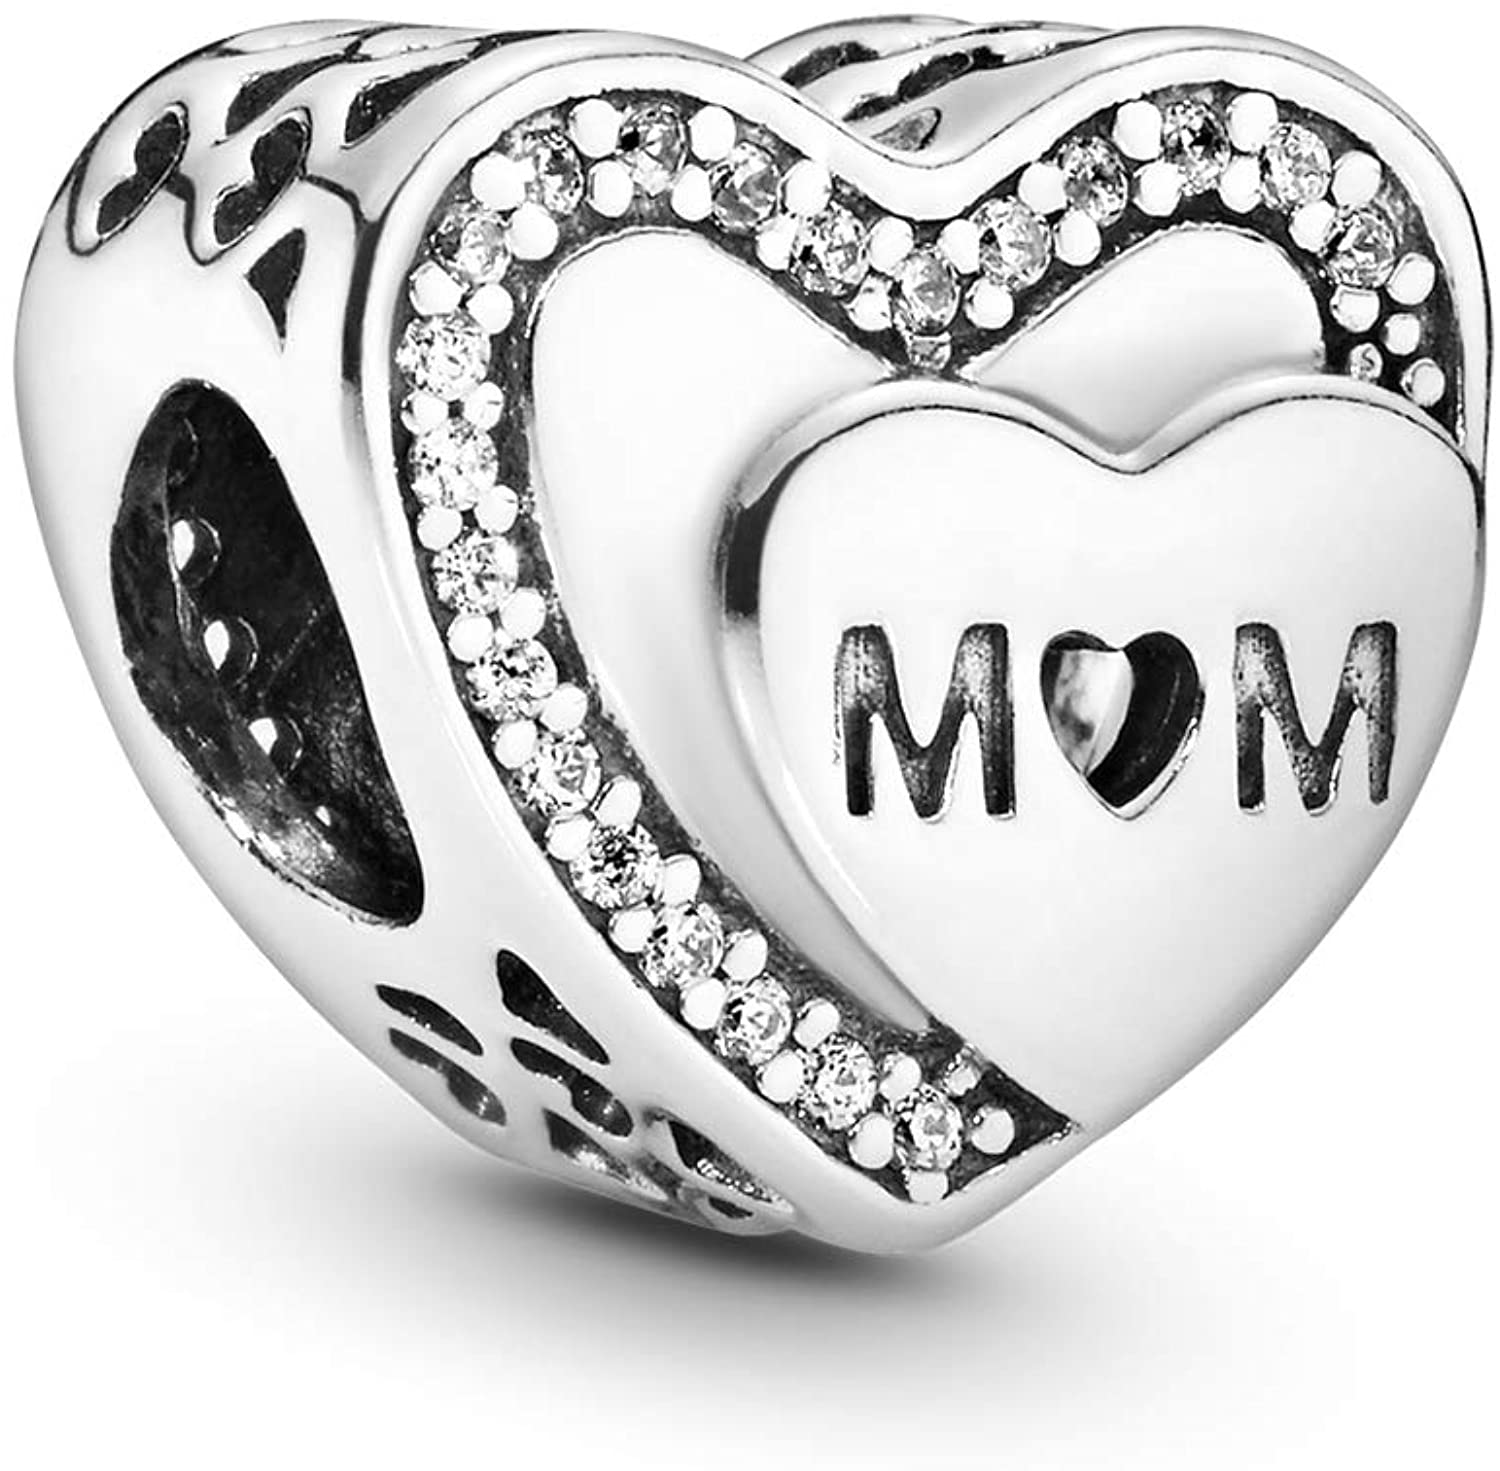 Pandora Jewelry Sparkling Mom Heart Cubic Zirconia Charm in Sterling Silver